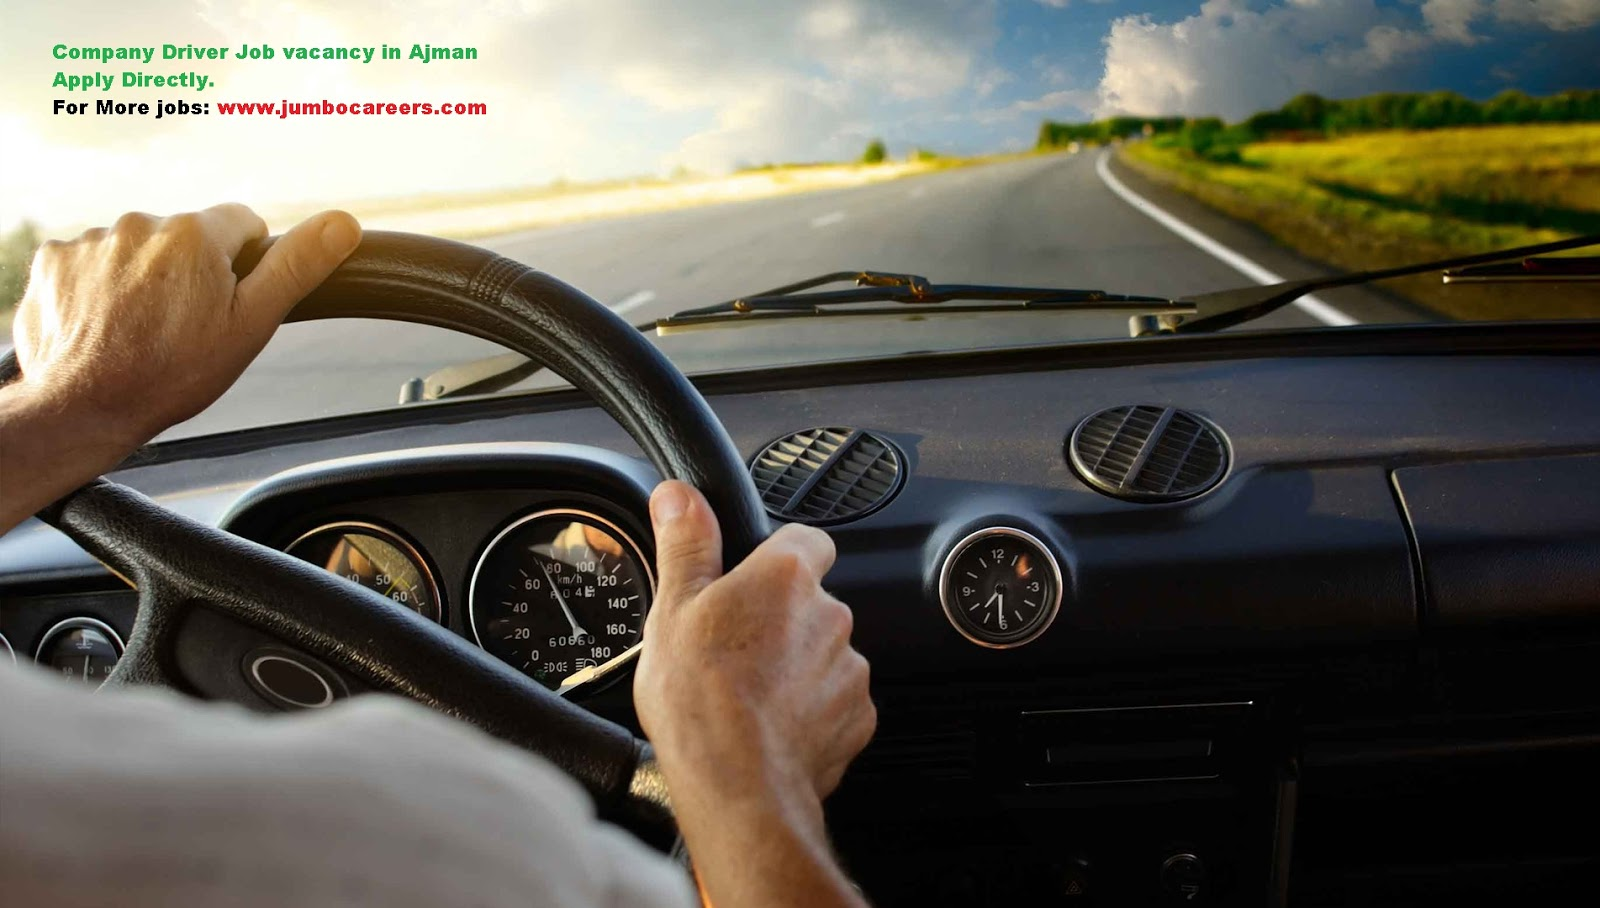 Light Vehicle Driver Job Vacancy in Ajman UAE - Urgent Joining